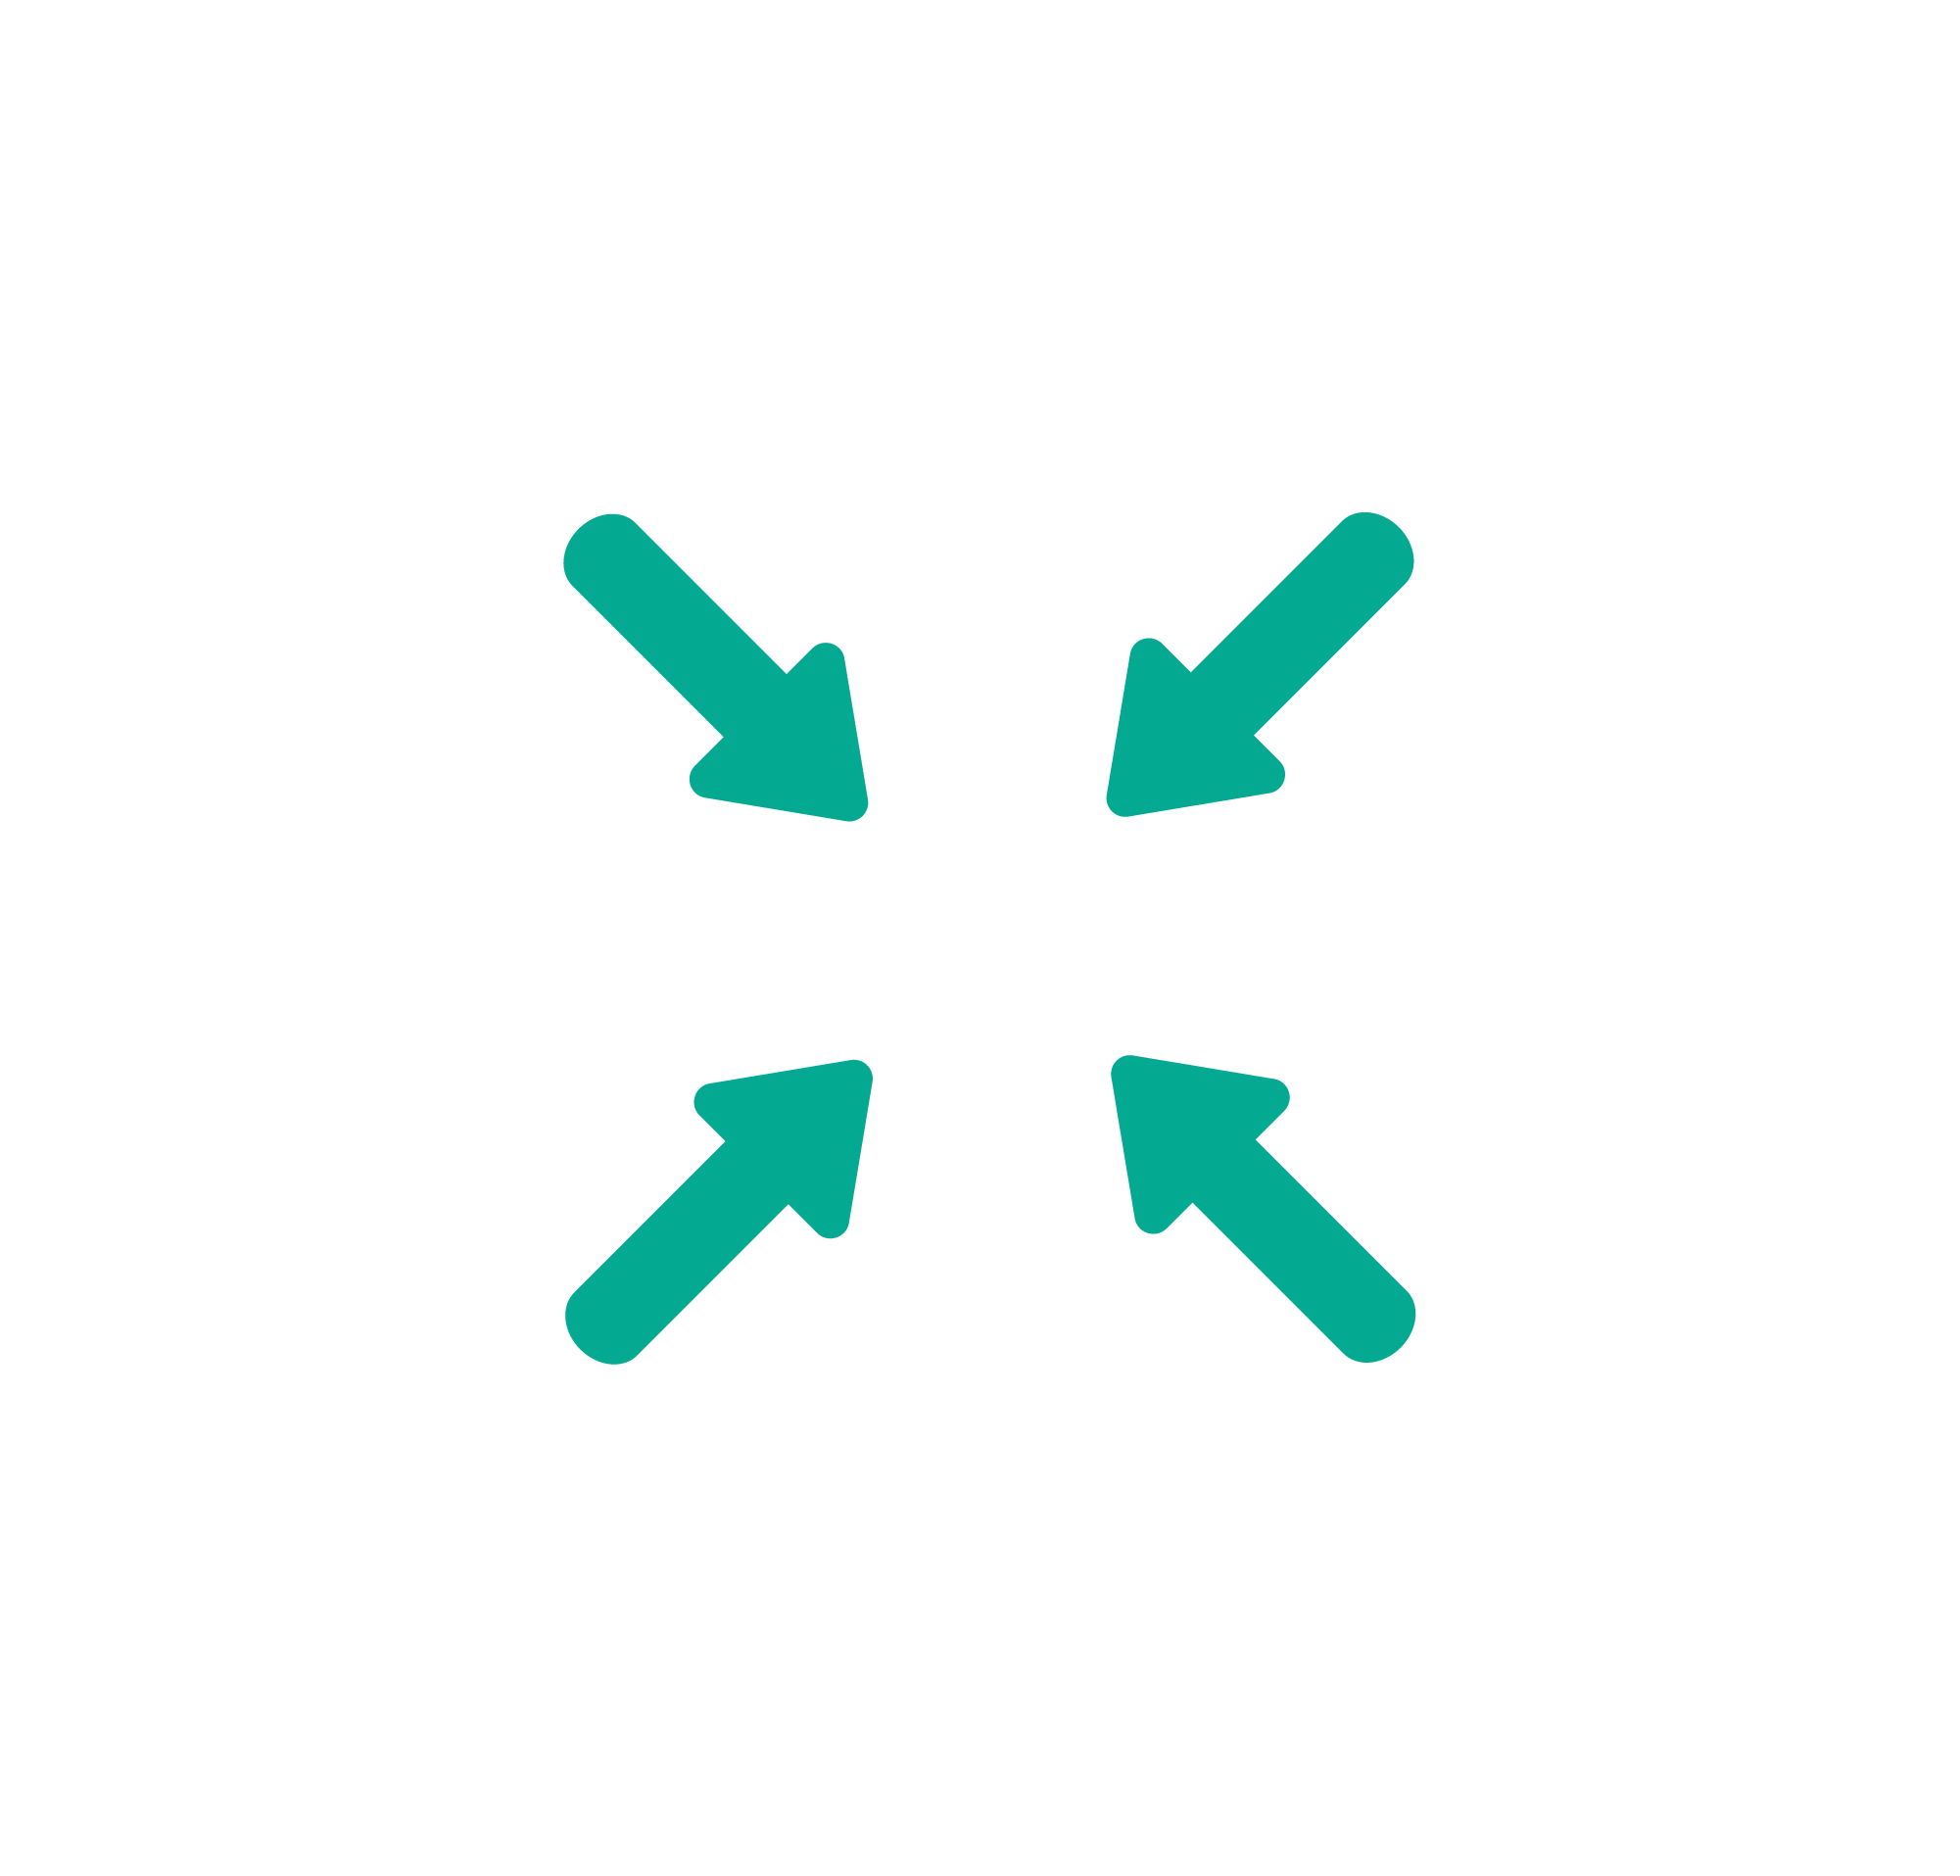 problem_icon-16.png